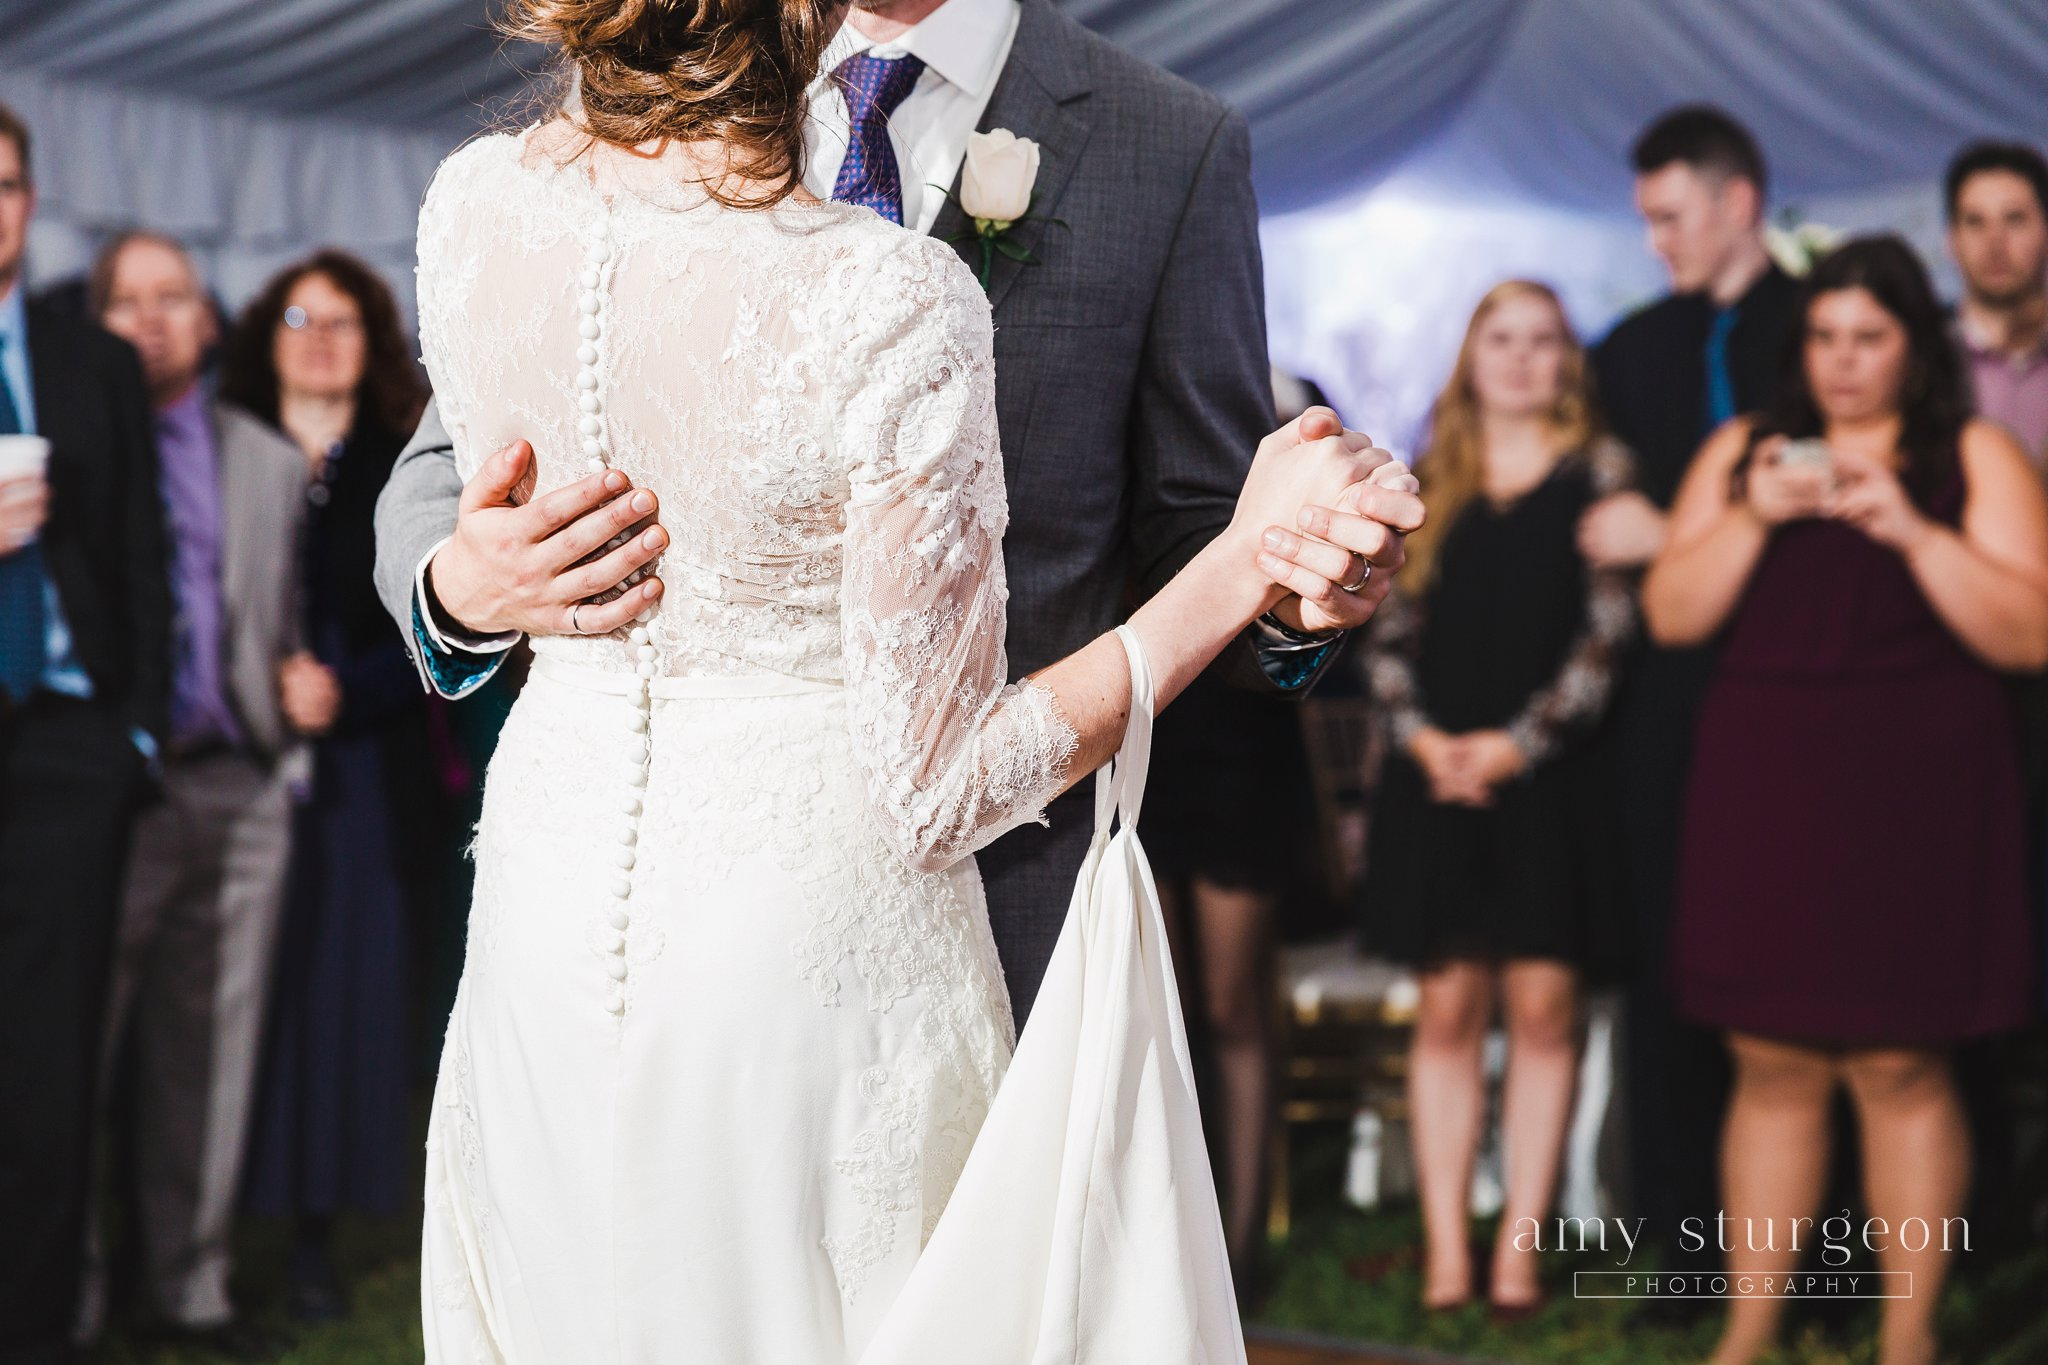 The bride's dress had the most intricate lace sleeves with white satin buttons at the alpaca farm wedding